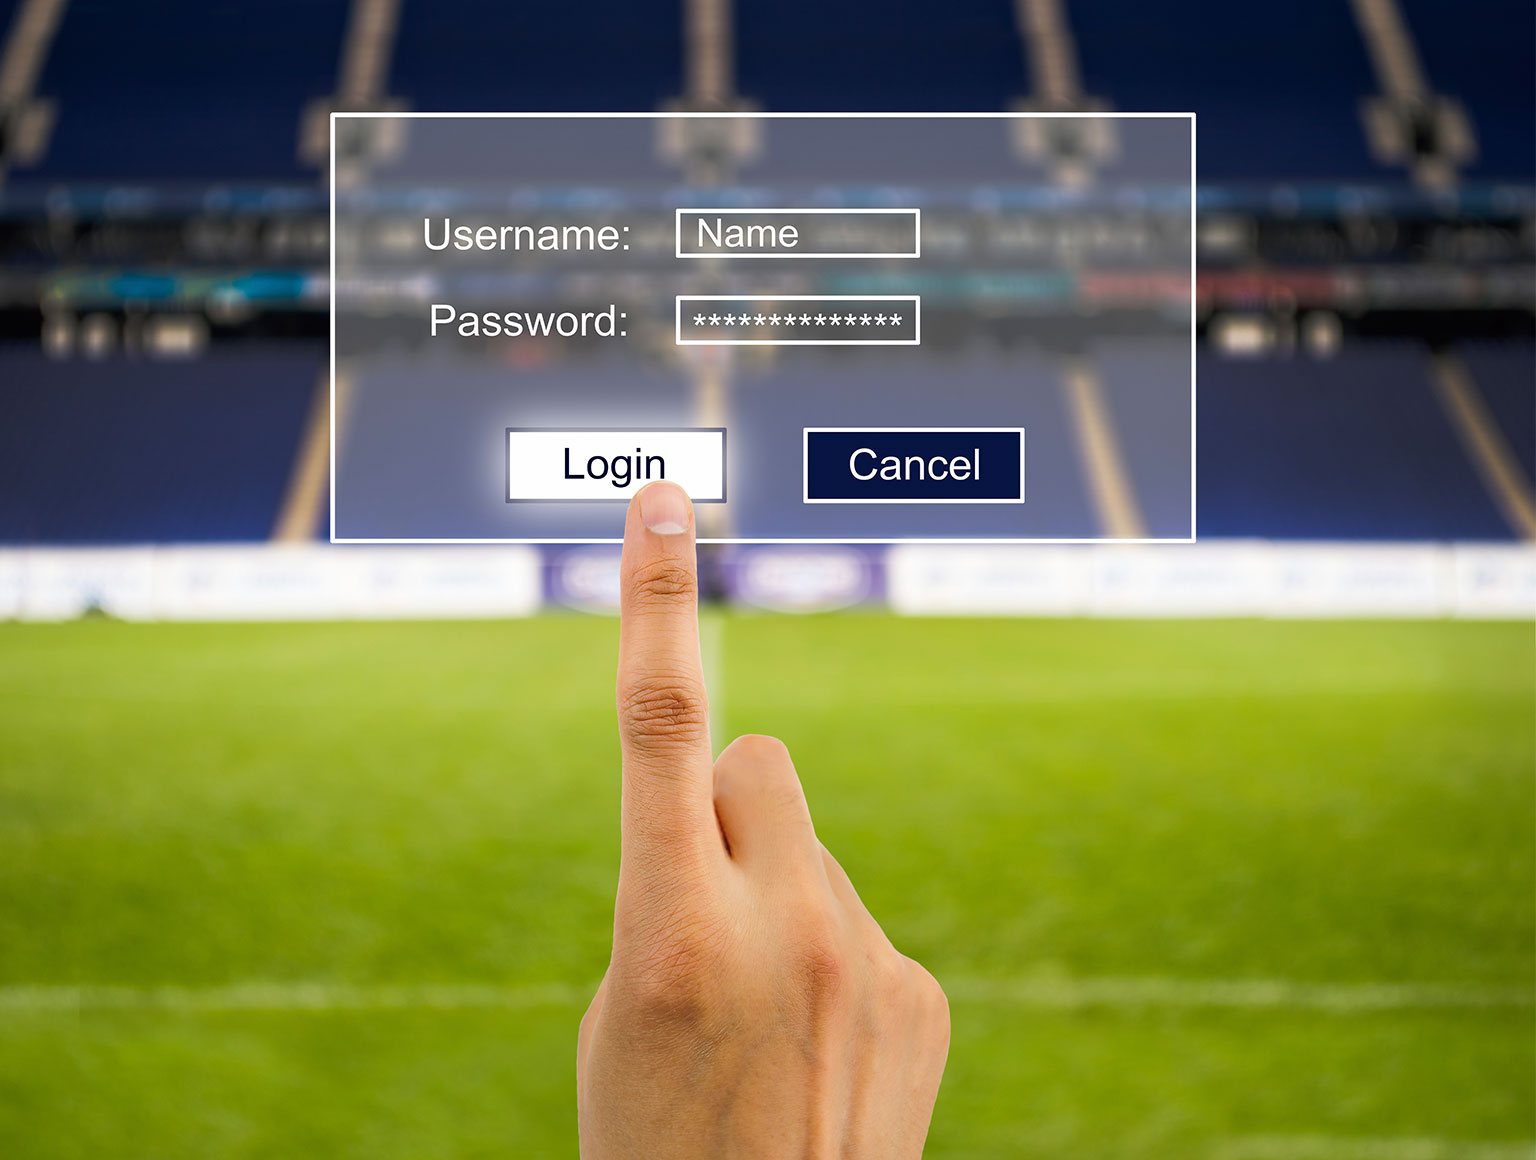 Finger poised to log in to virtual account in front of blurred sports stadium